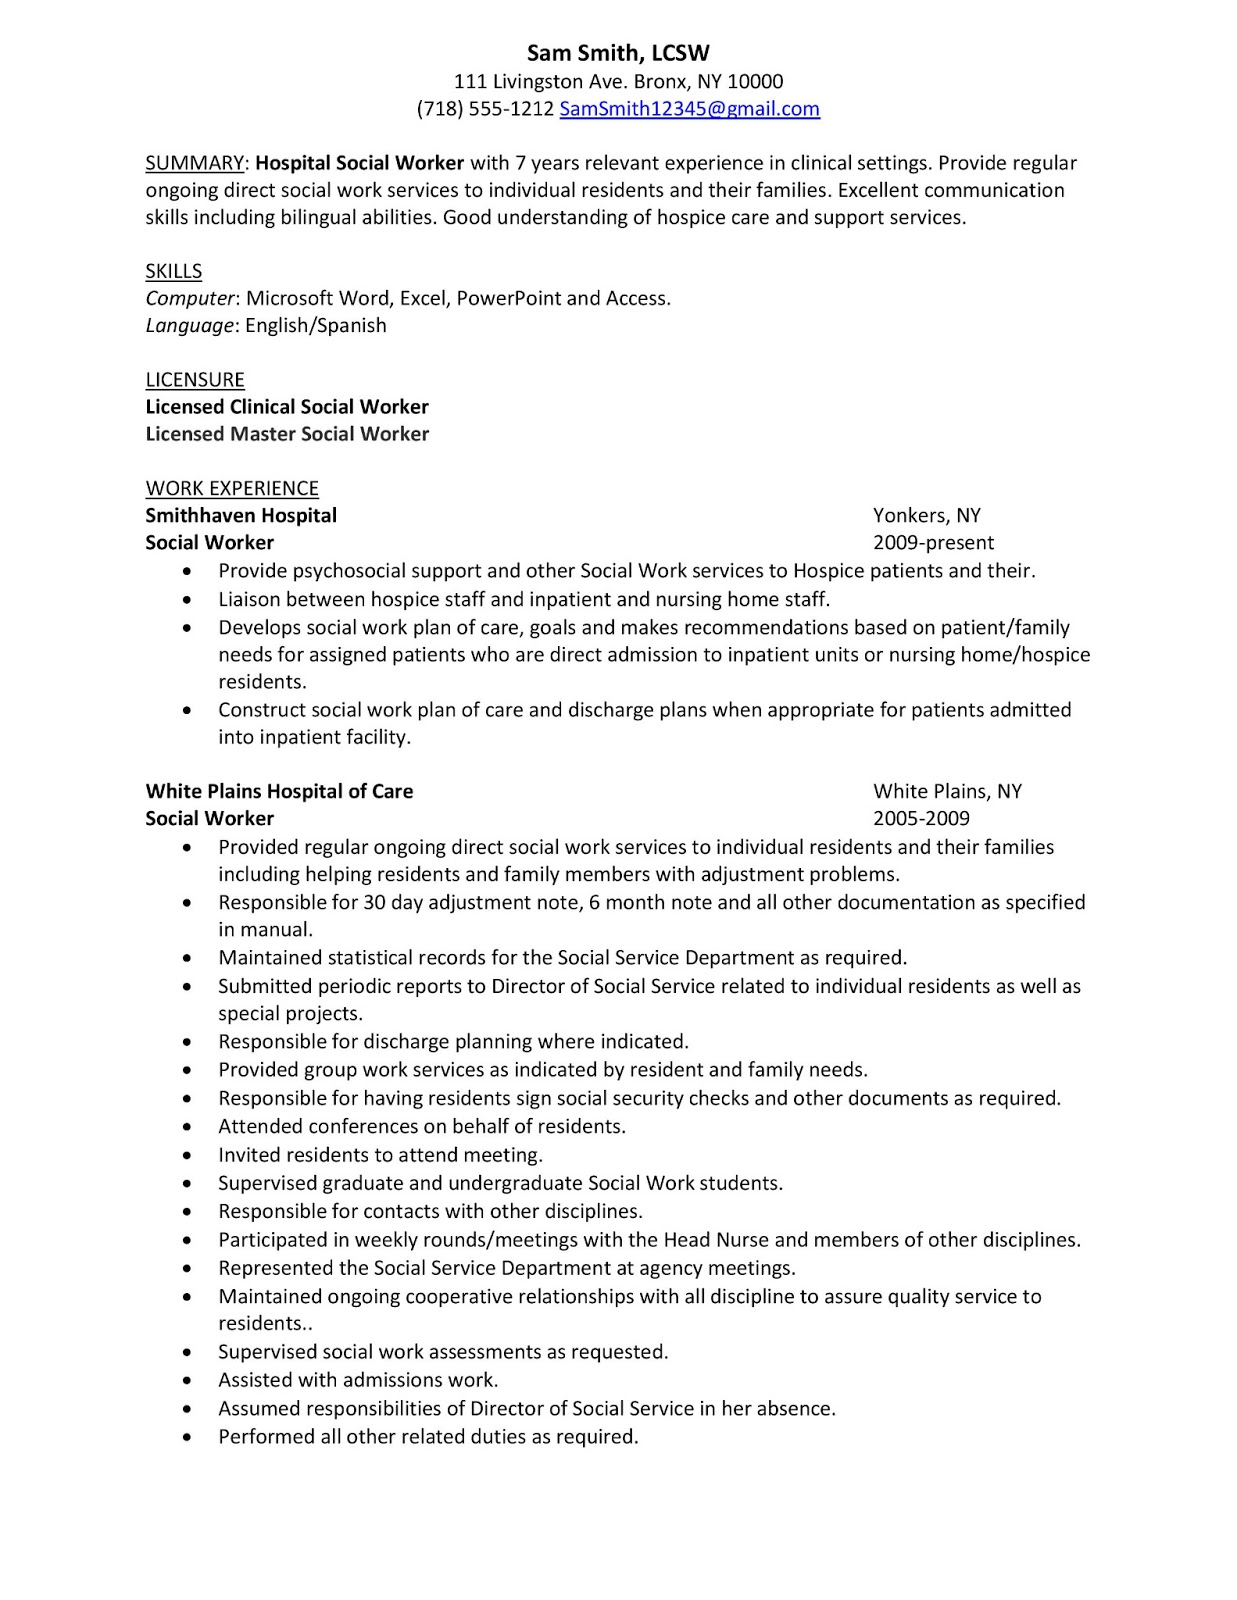 Sample Resume: Hospital Social Worker  Sample Healthcare Resume